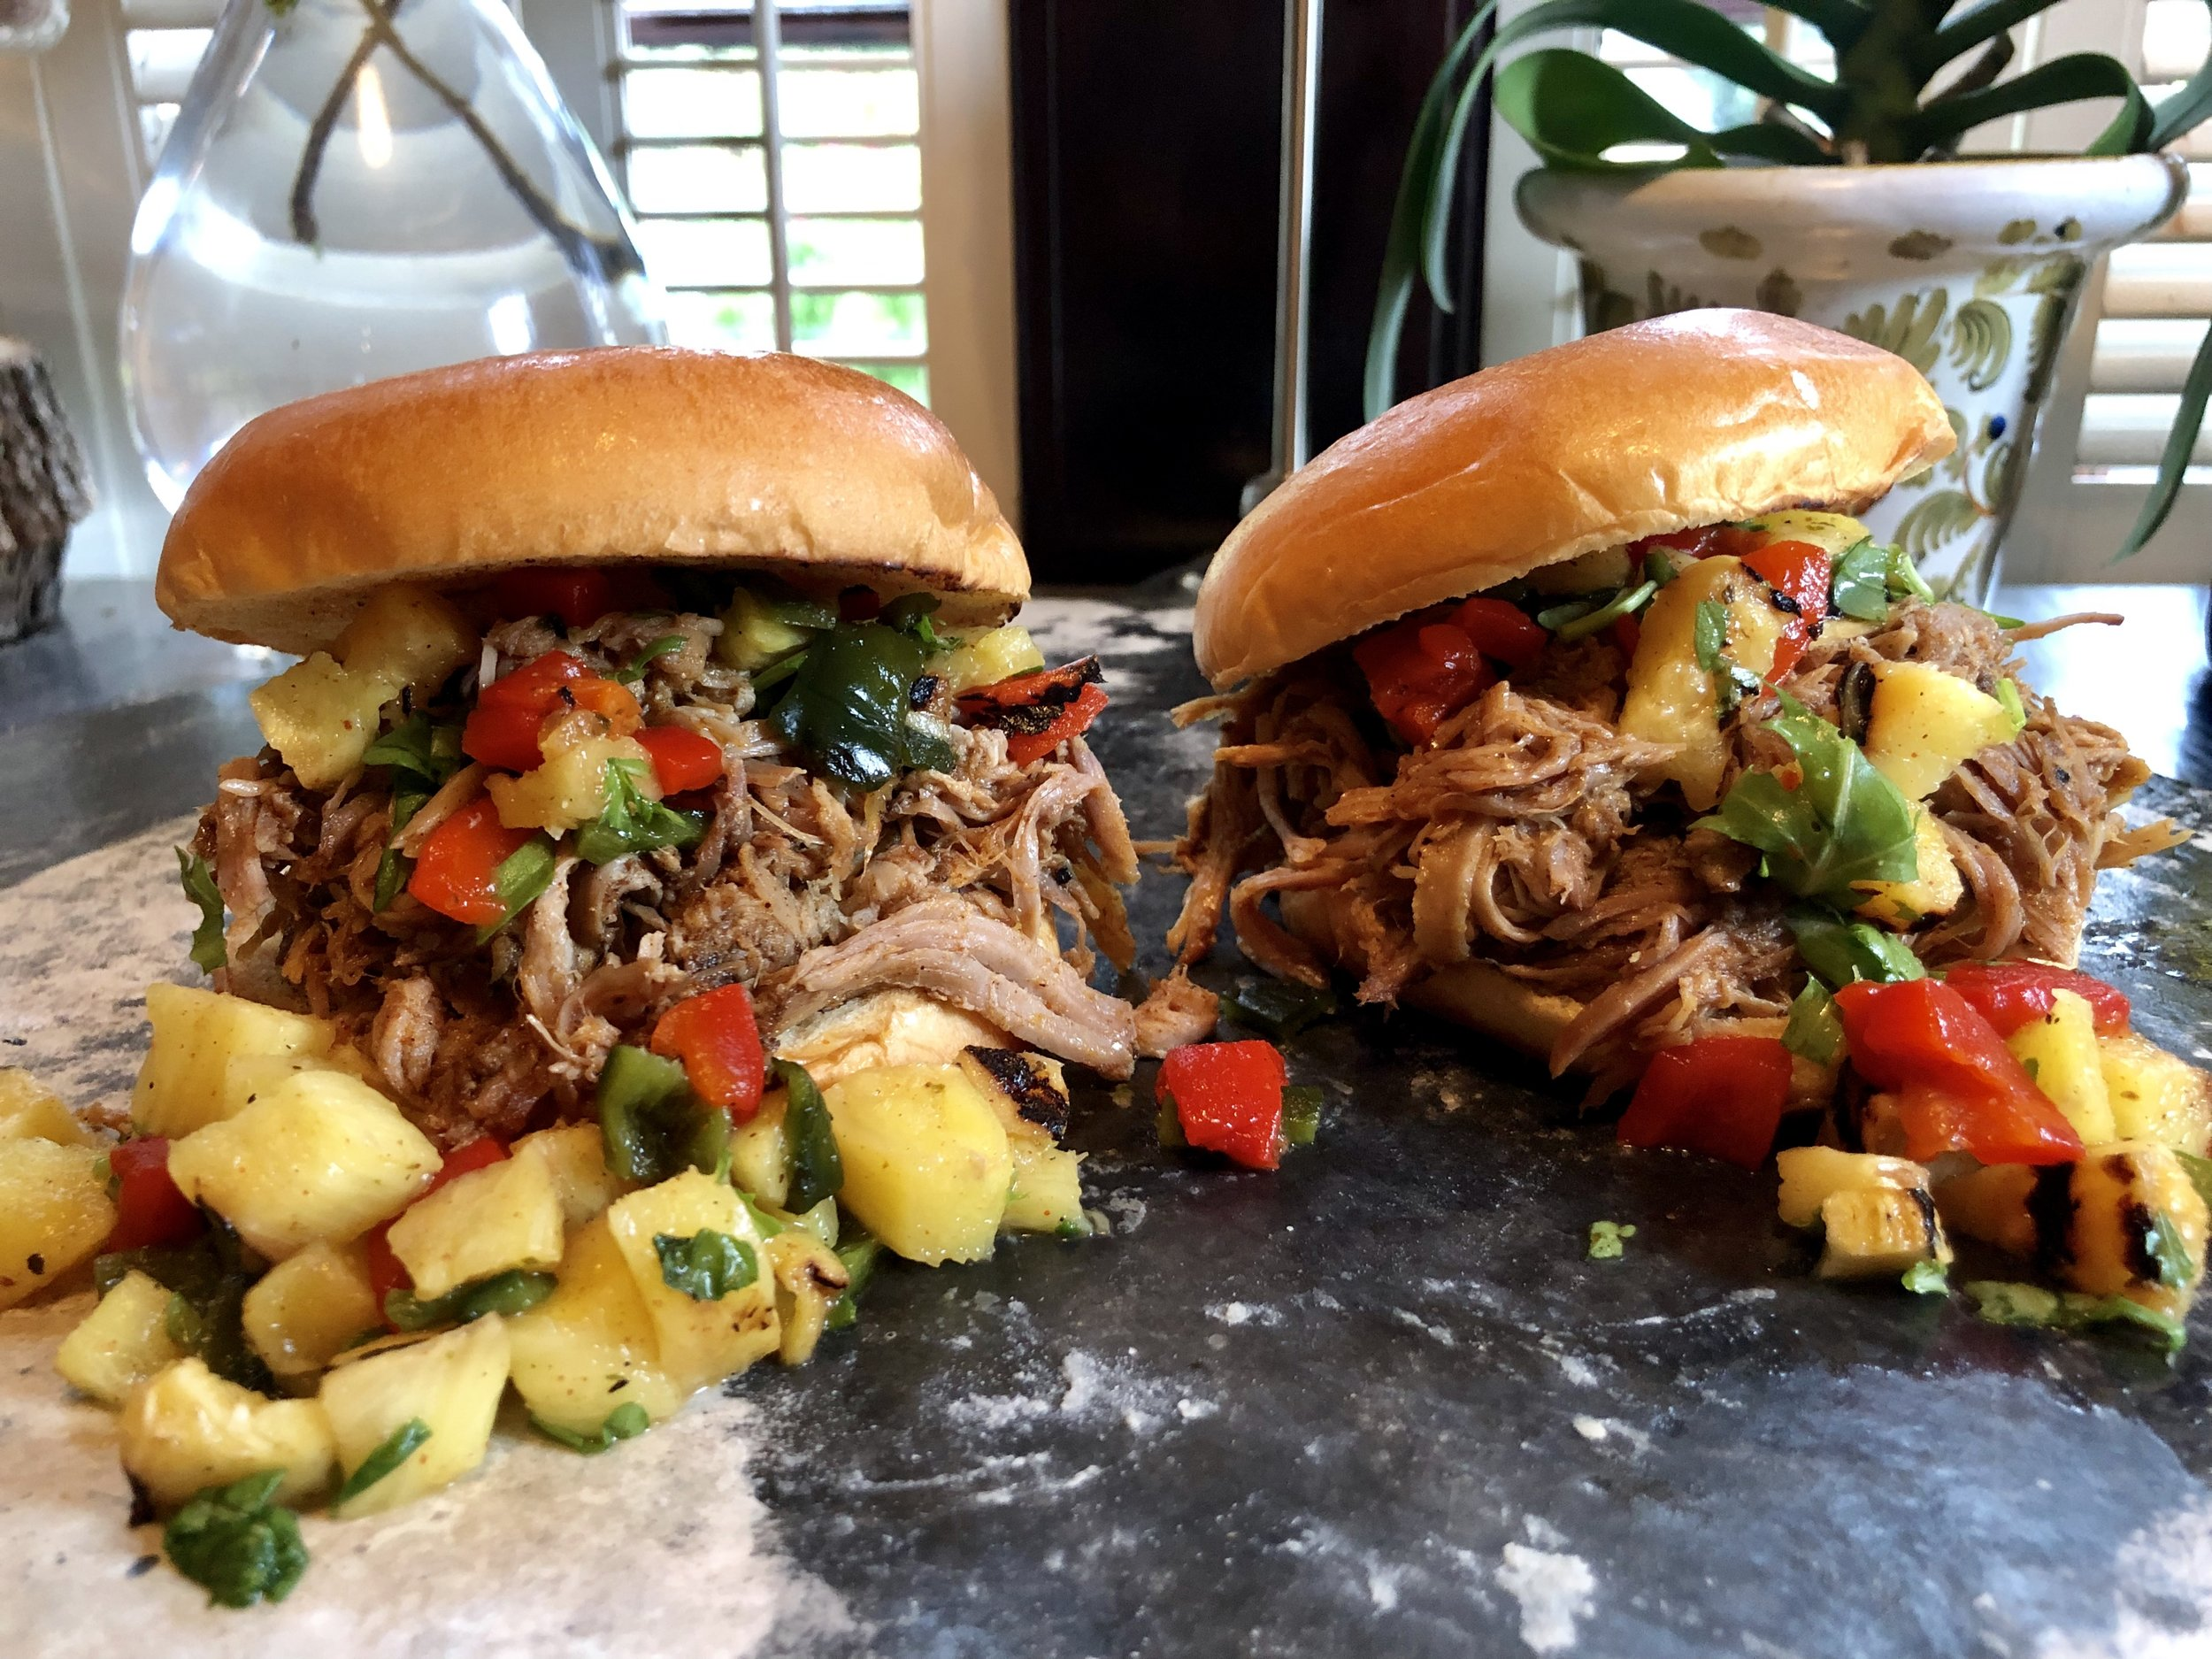 Chop up grilled pineapple, roasted Poblano and Red Chilis, cilantro, and fresh orange juice for a vibrant topping to your shredded pork sandwiches.